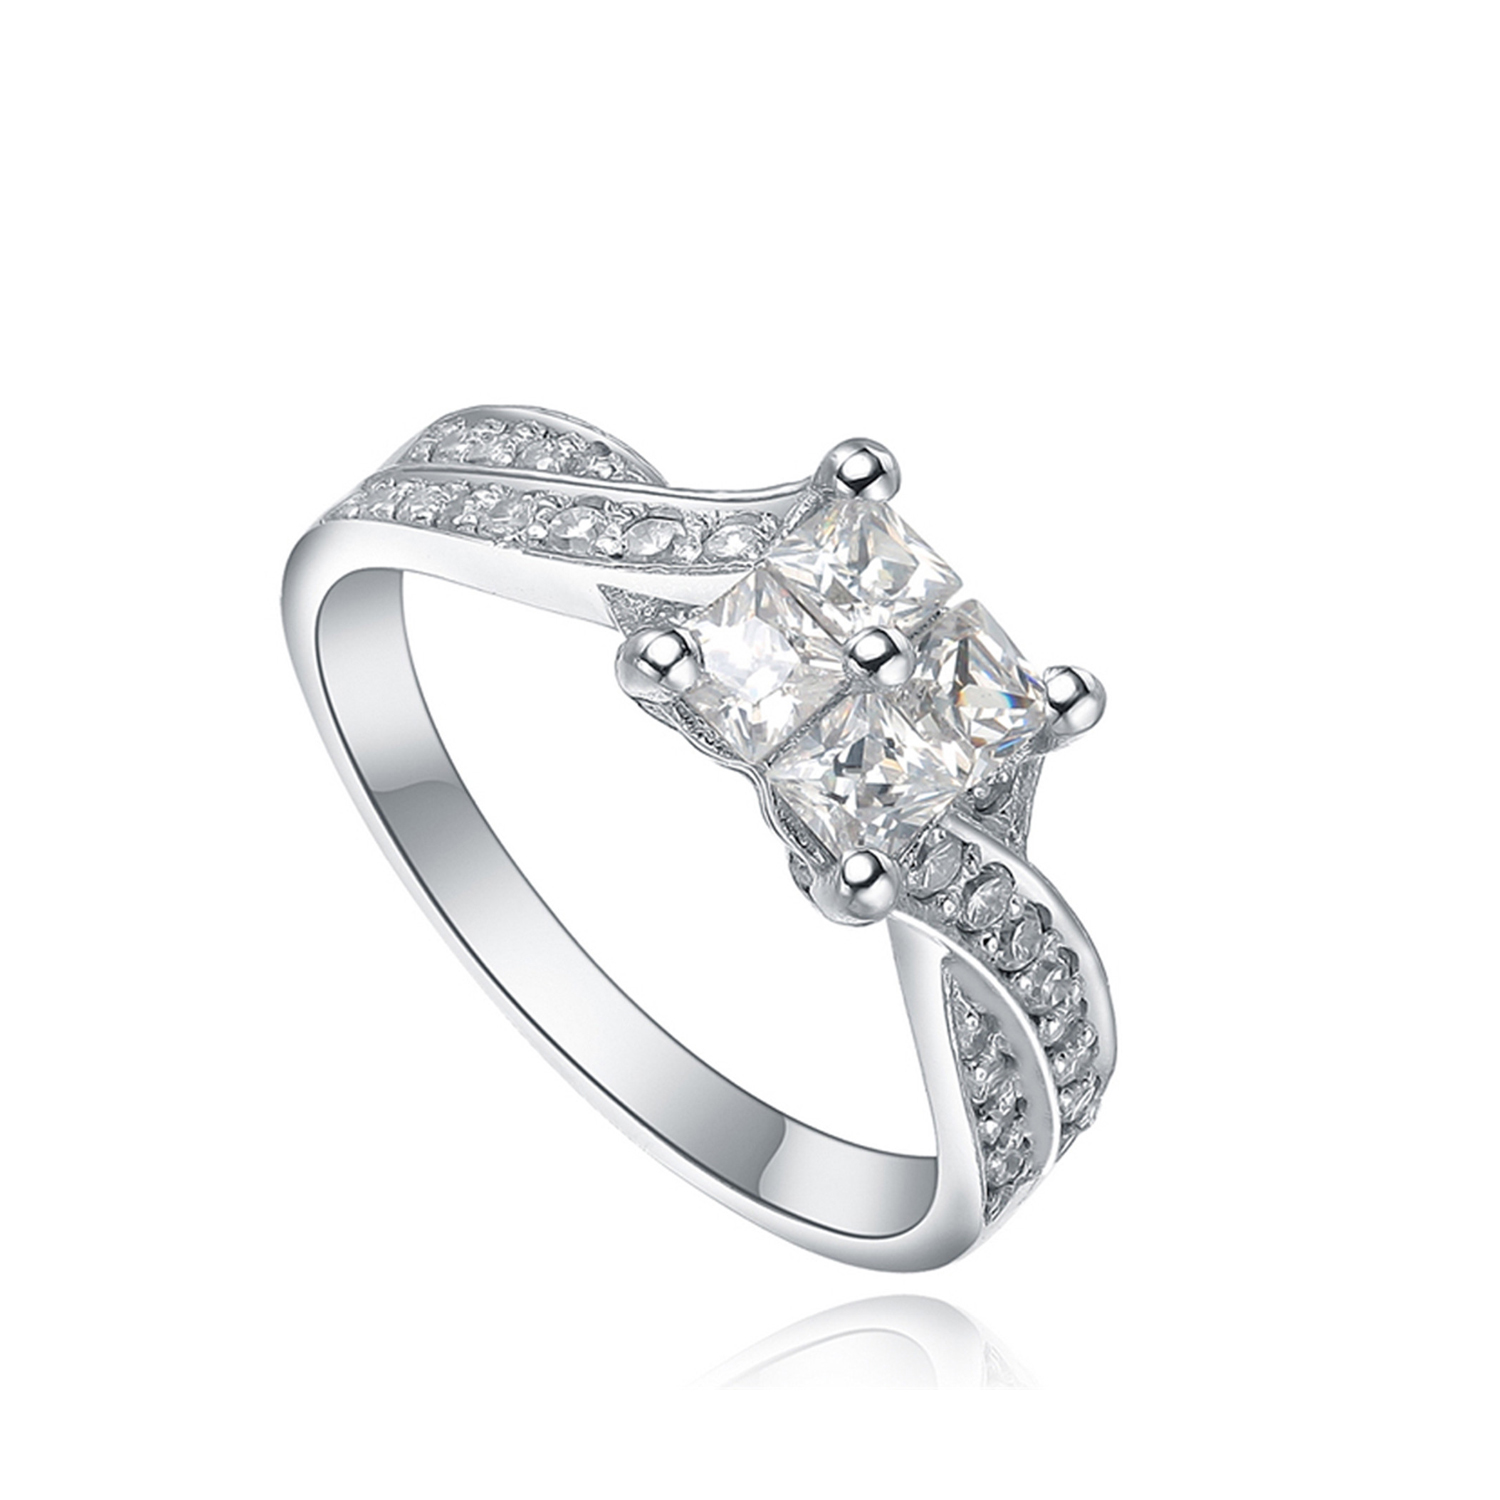 custom eternity wedding engagement silver finger ring square design for women